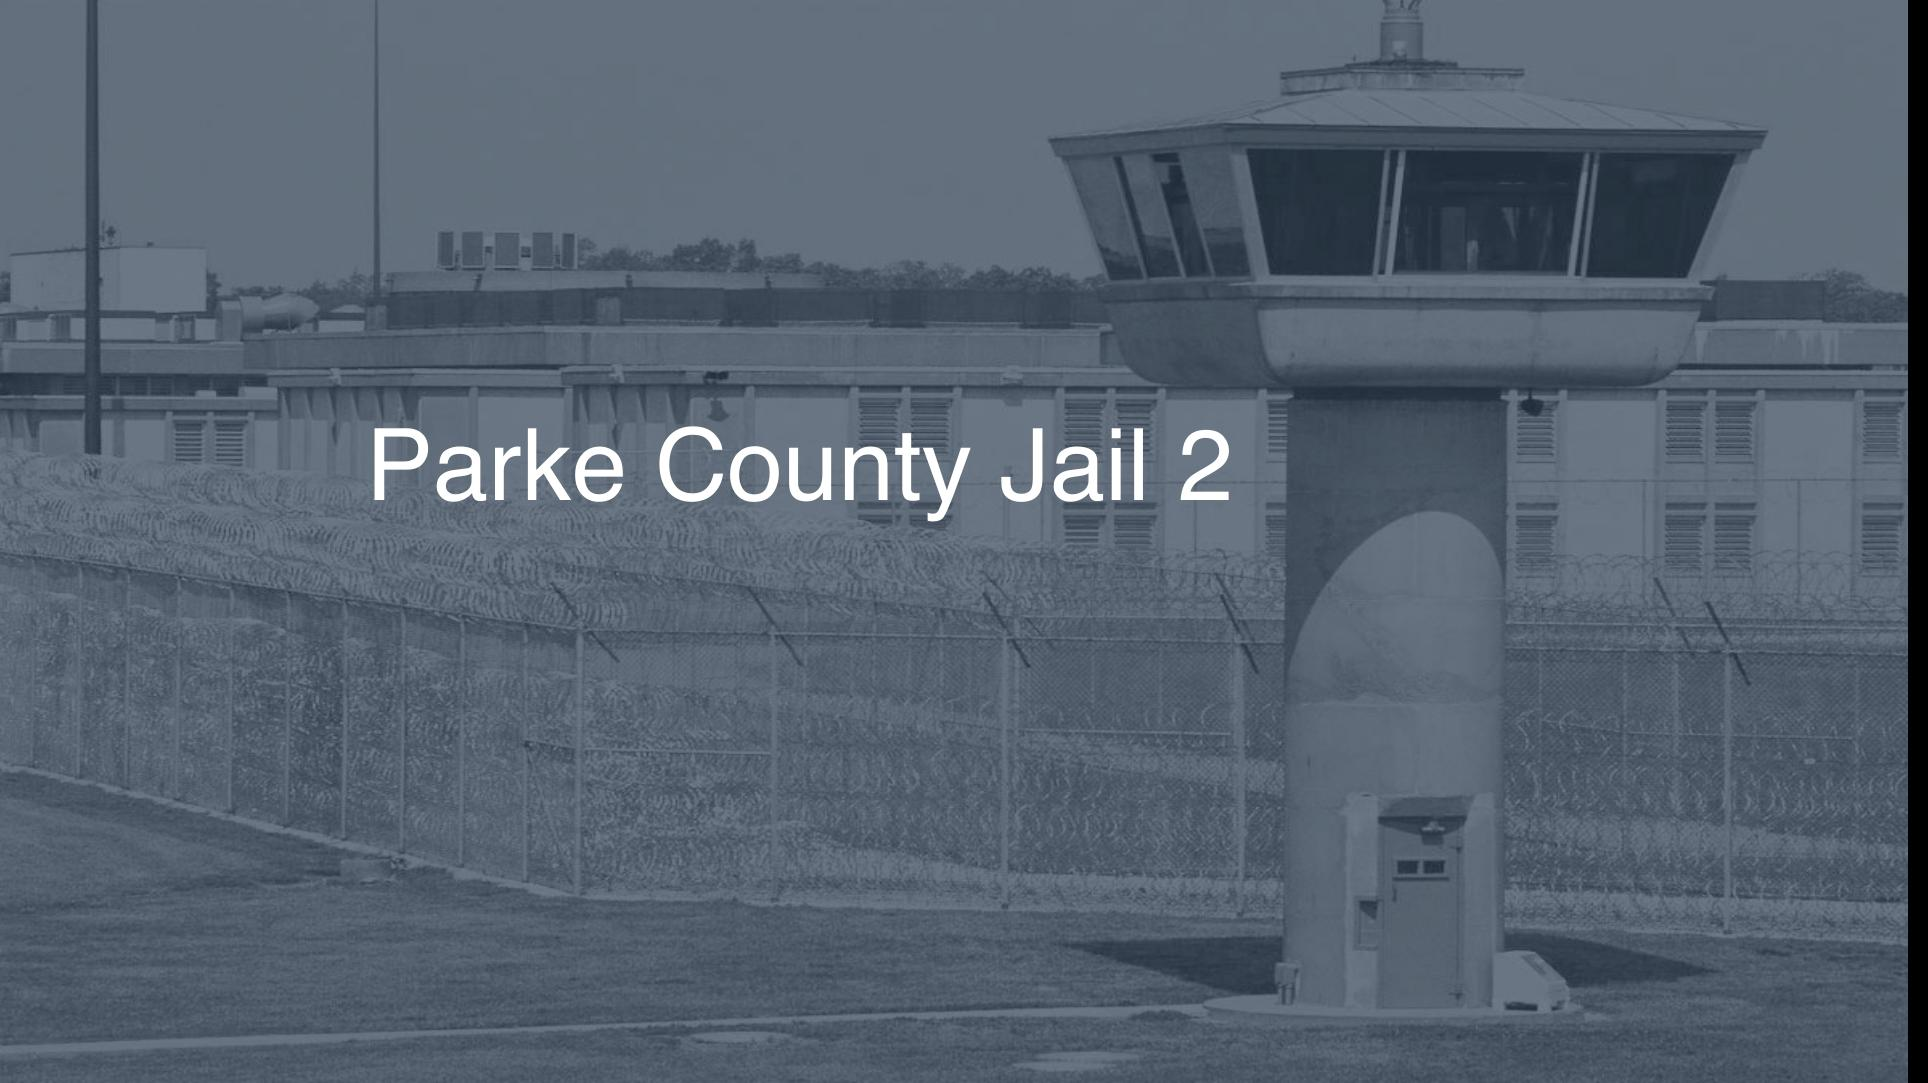 Parke County Jail correctional facility picture